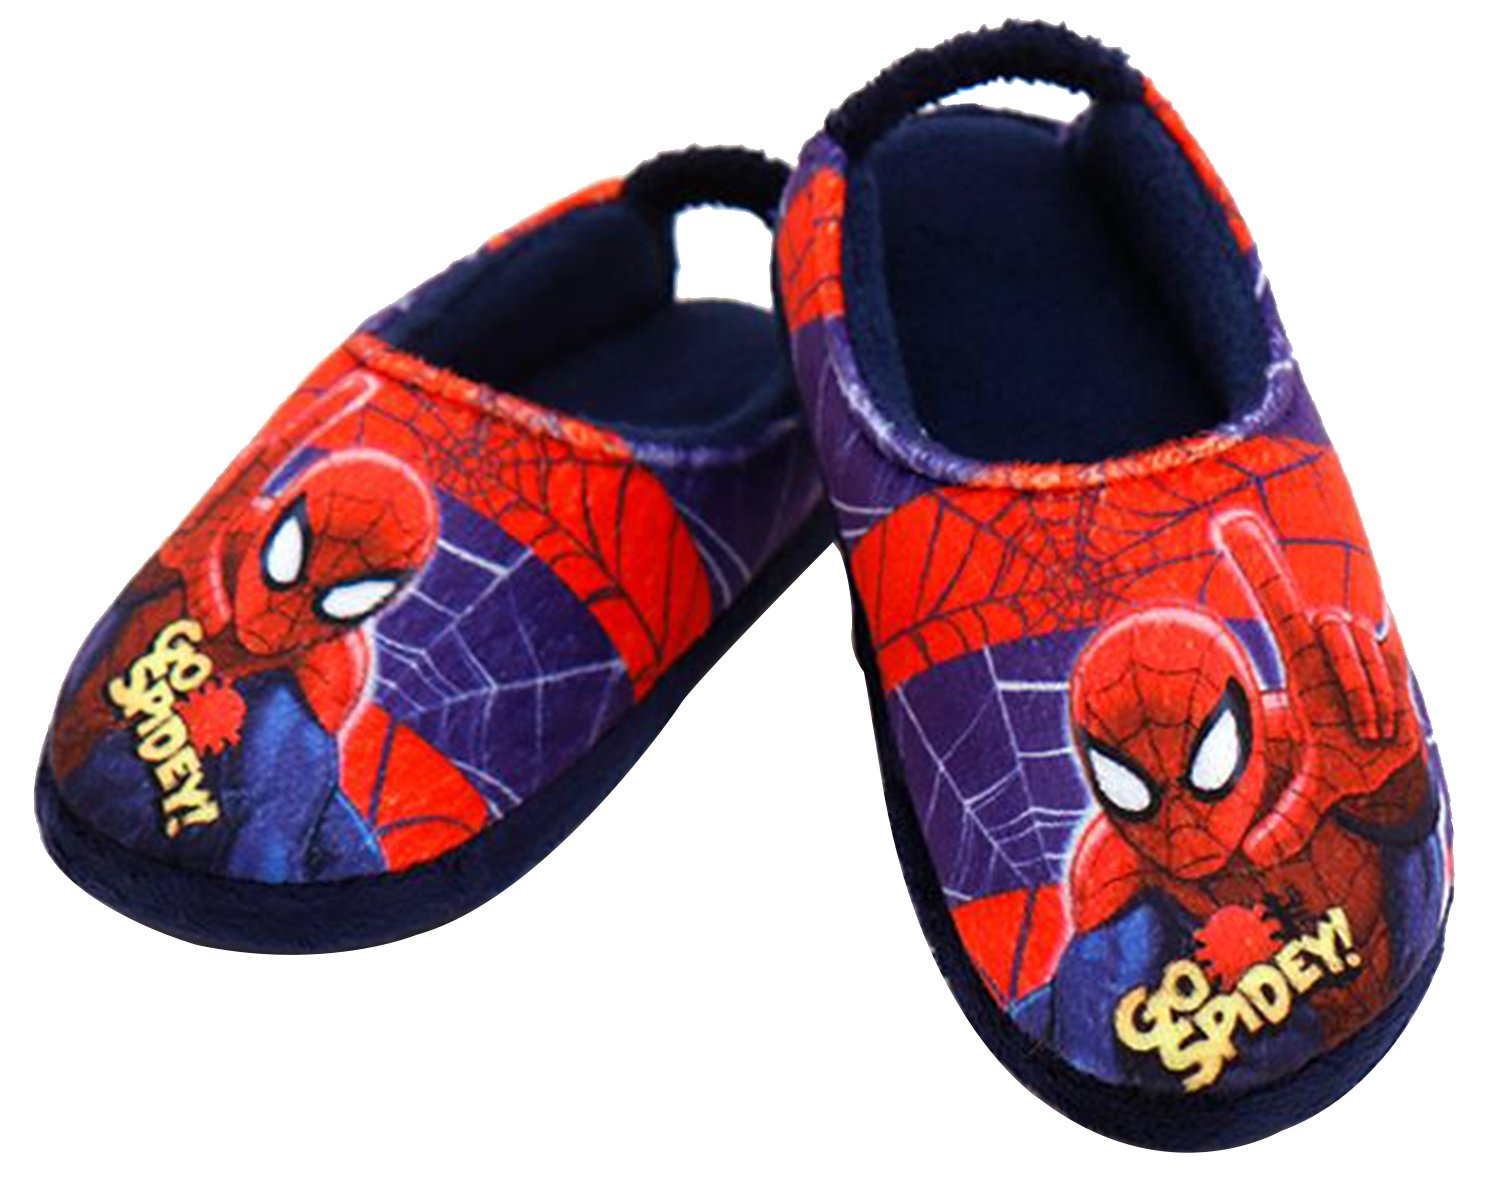 Joah Store Spider-Man Slippers for Boys Navy Red Warm Fur Clog Mule Indoor Shoes (8 M US Toddler, Spider-Man_B)